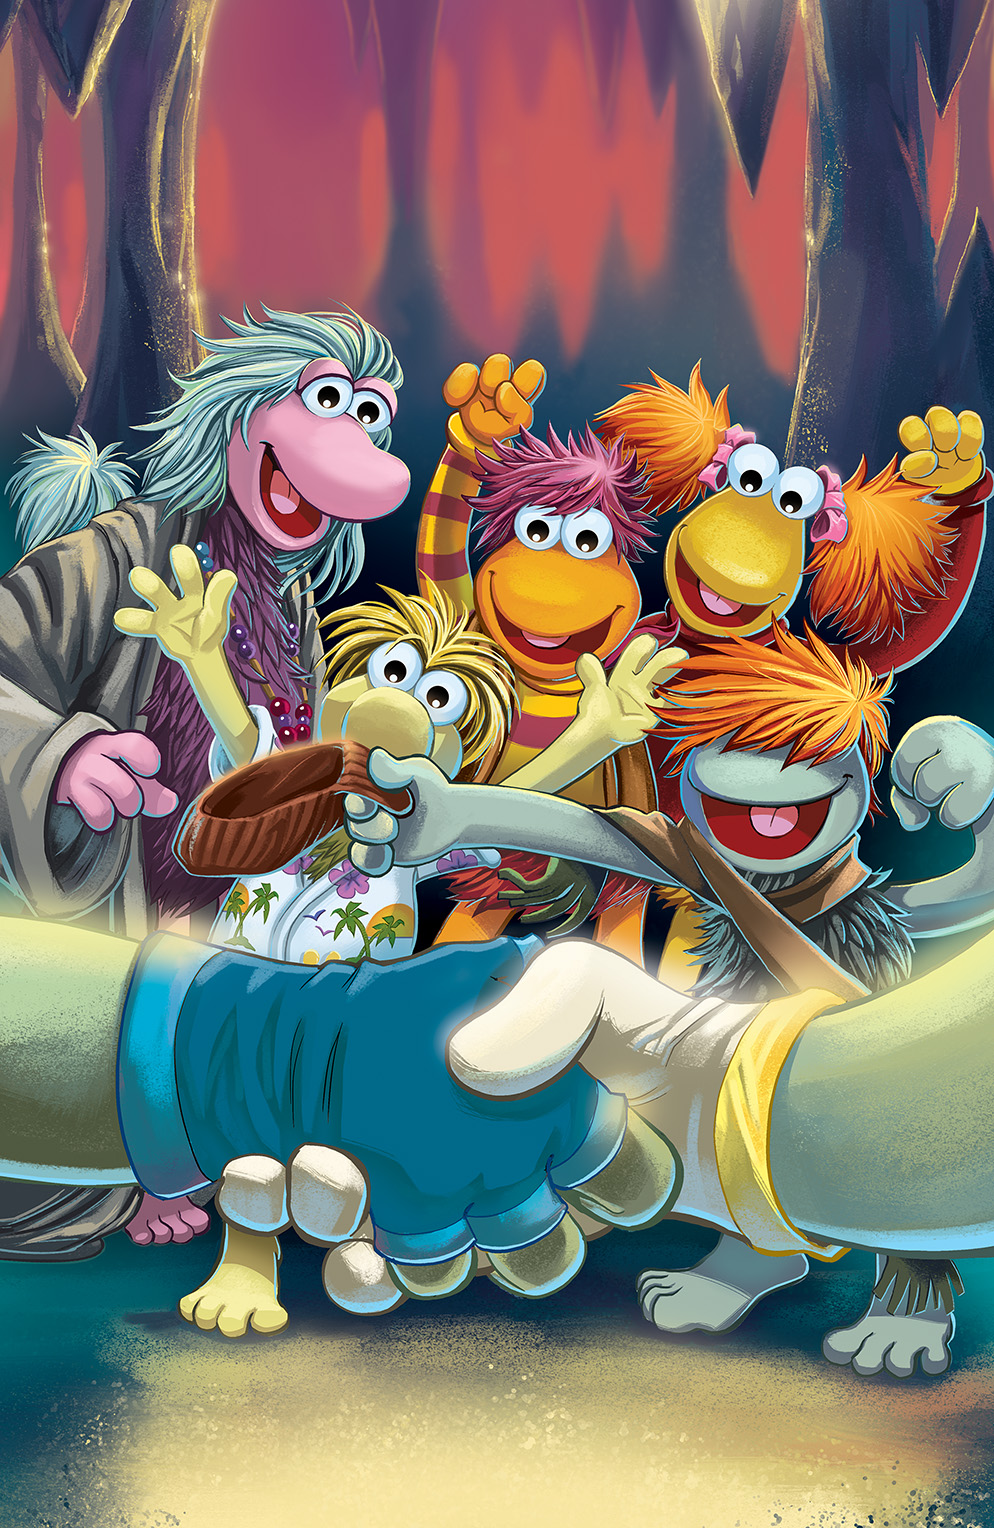 Fraggle Rock: Journey to the Everspring #4 Cover by Jake Myler